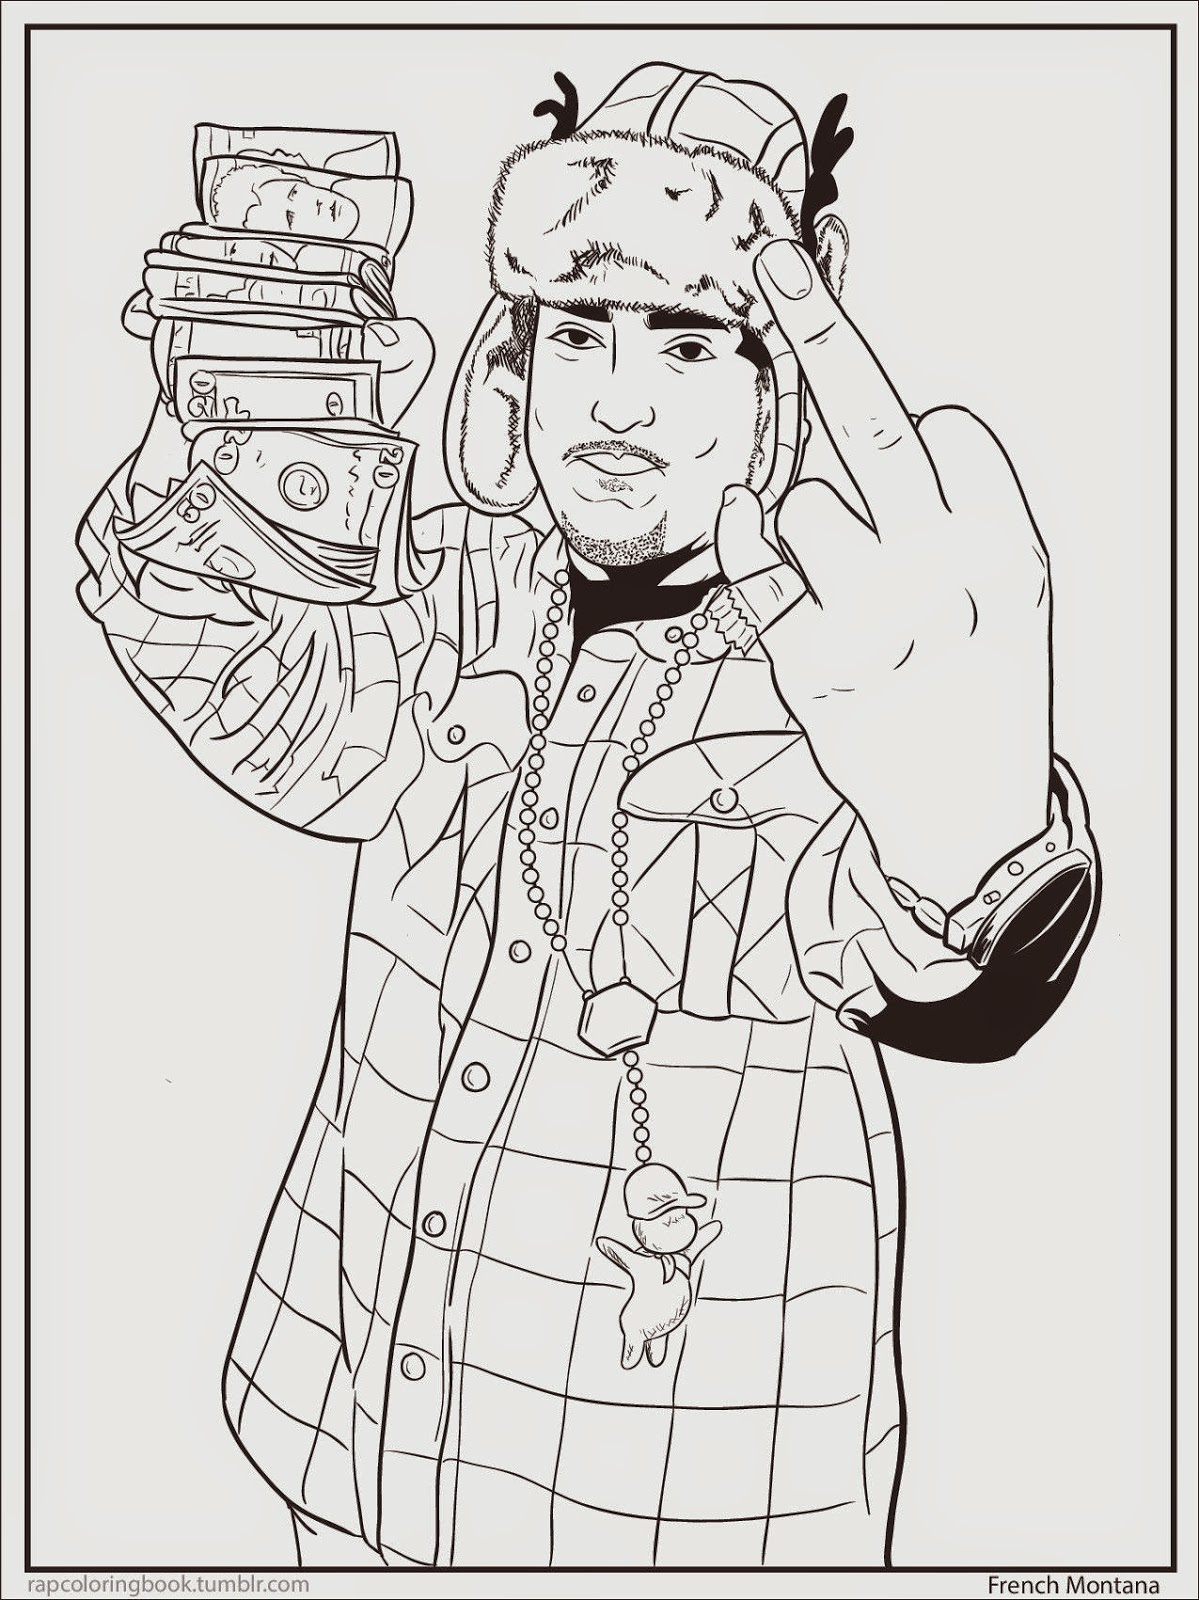 Drake rapper coloring pages